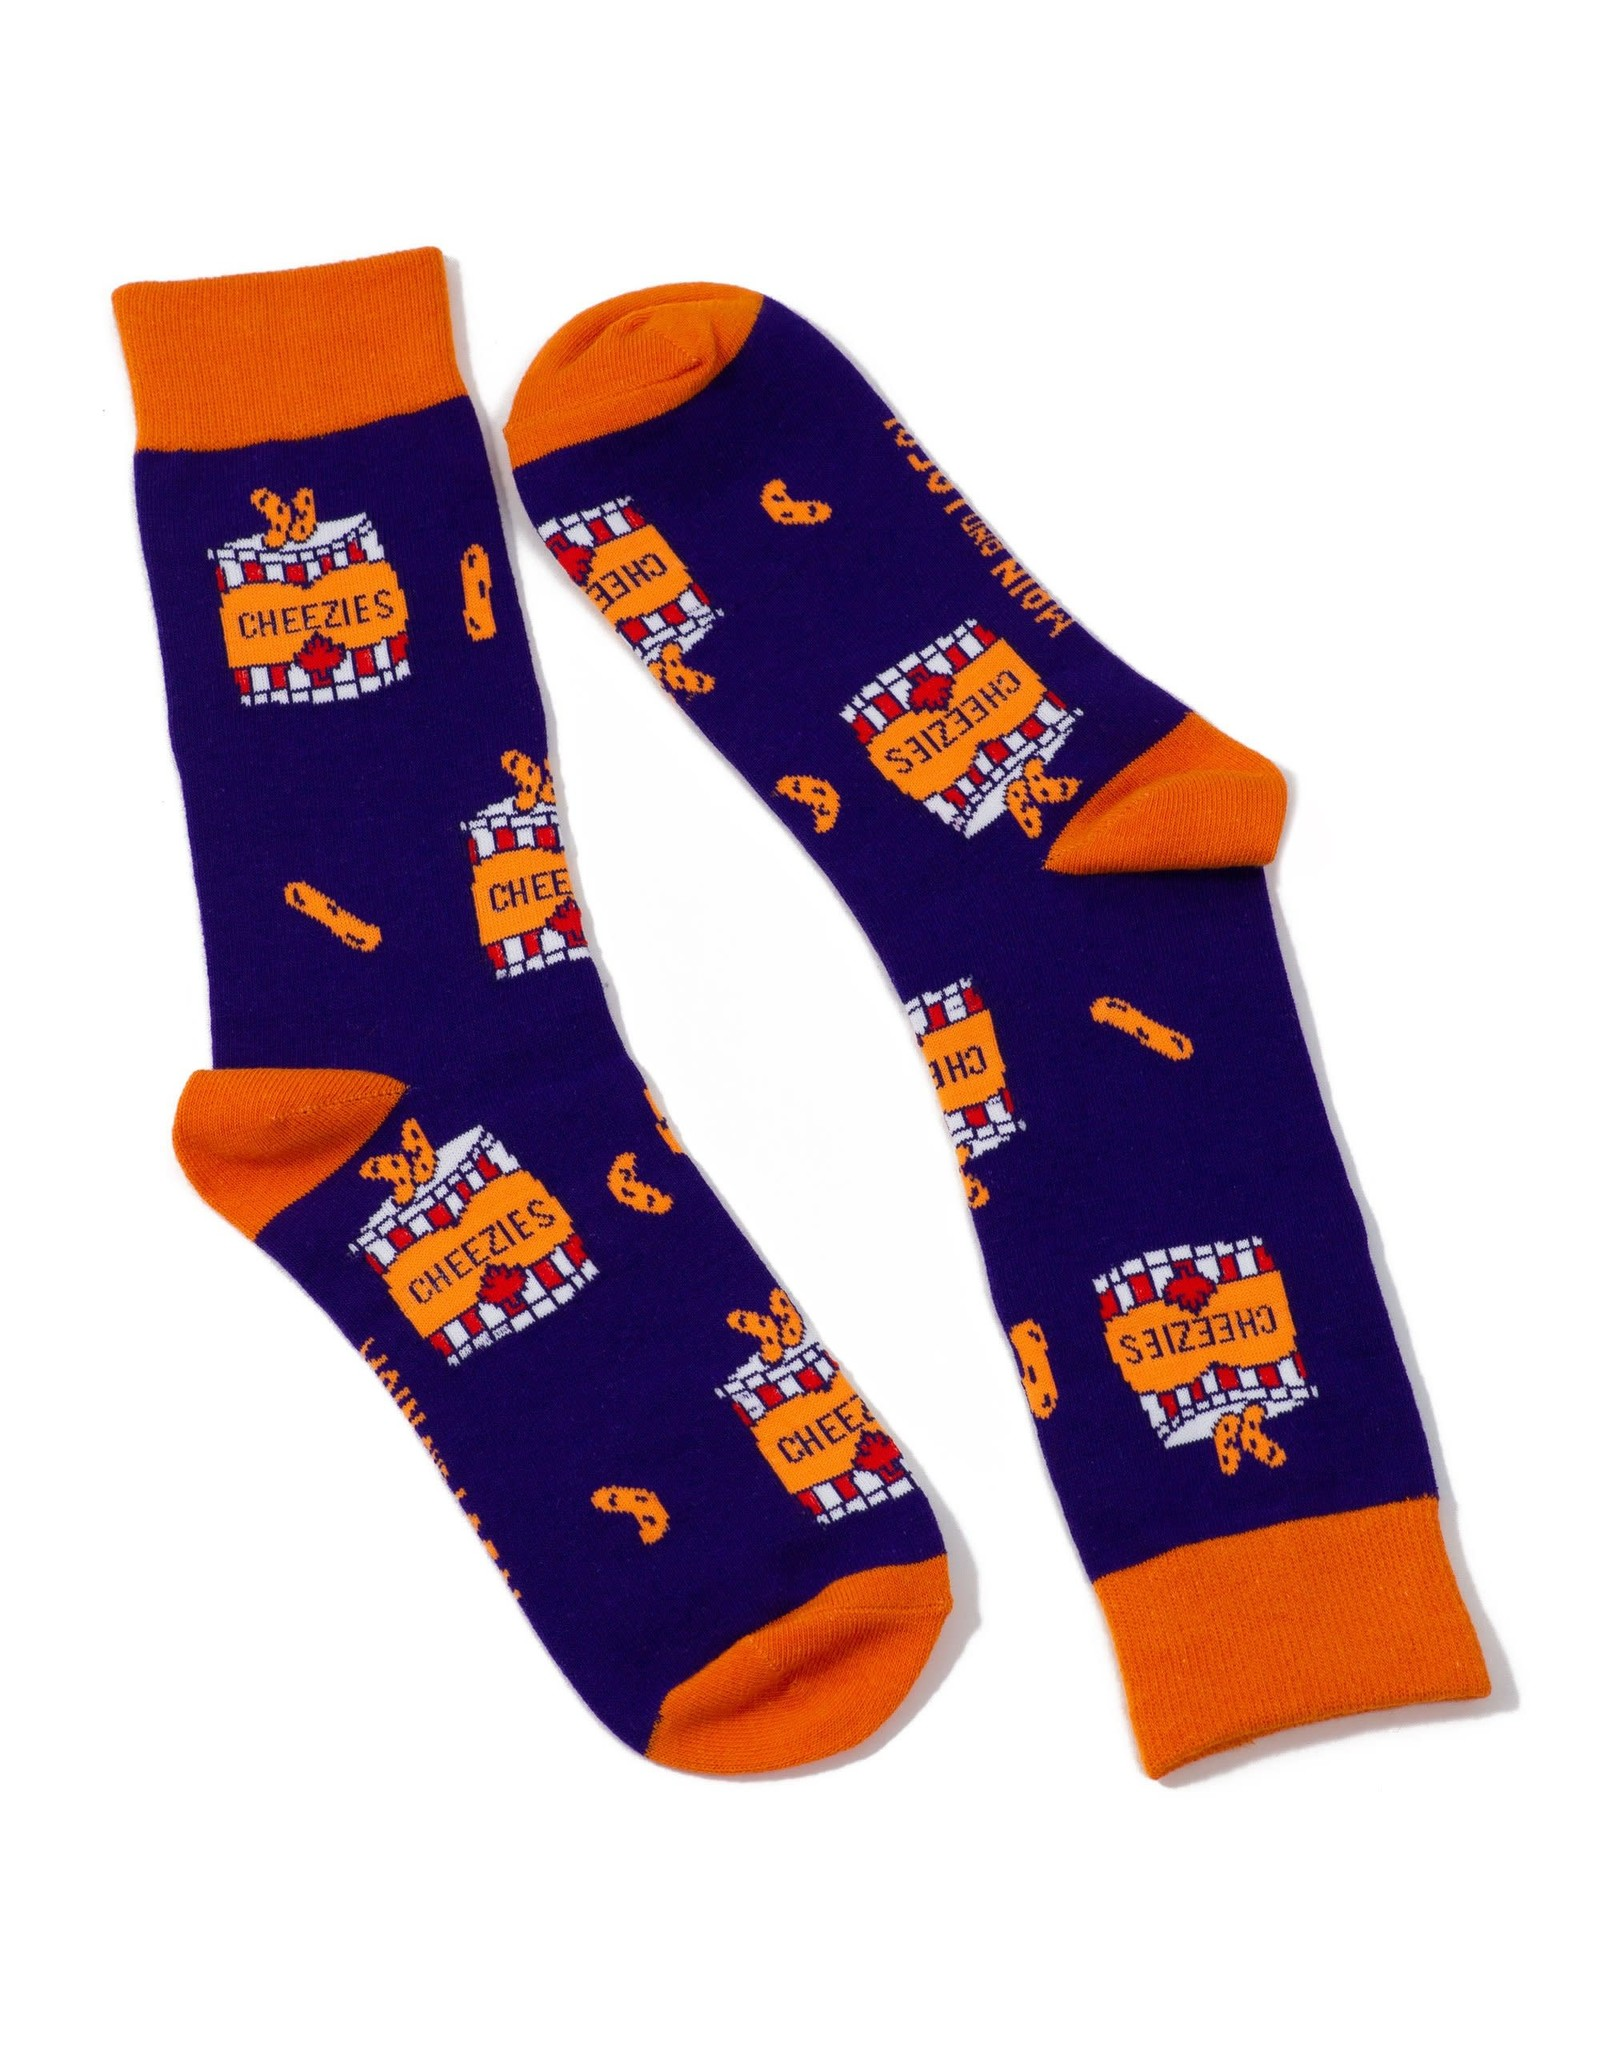 Main & Local Canadian Cheezies Socks